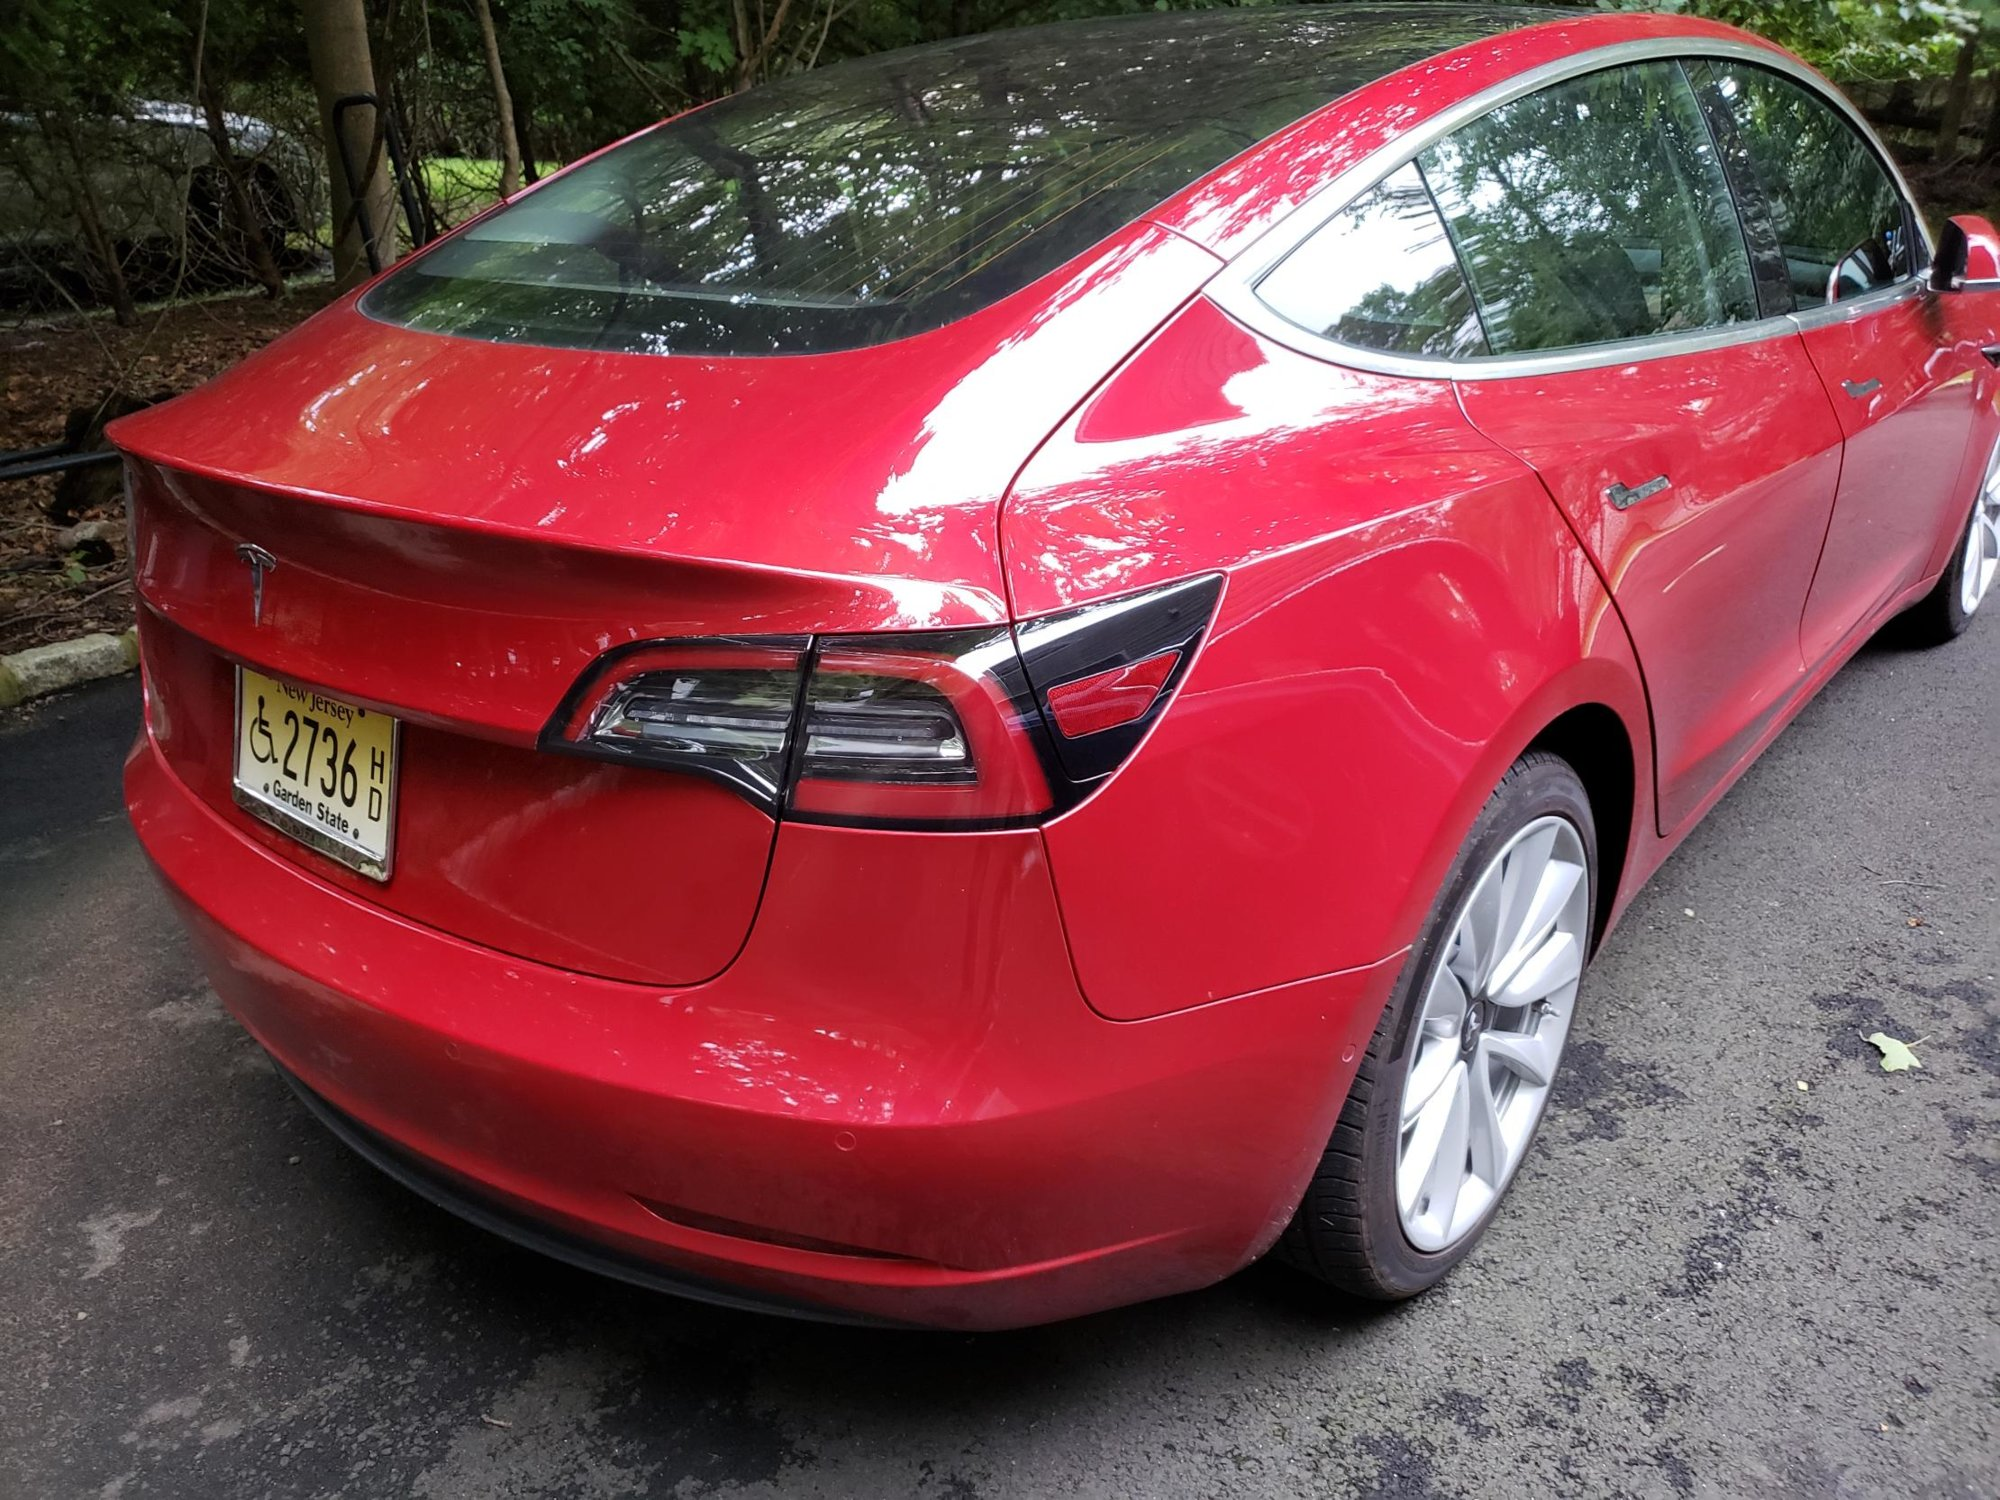 tesla red 3 photo 2.jpg